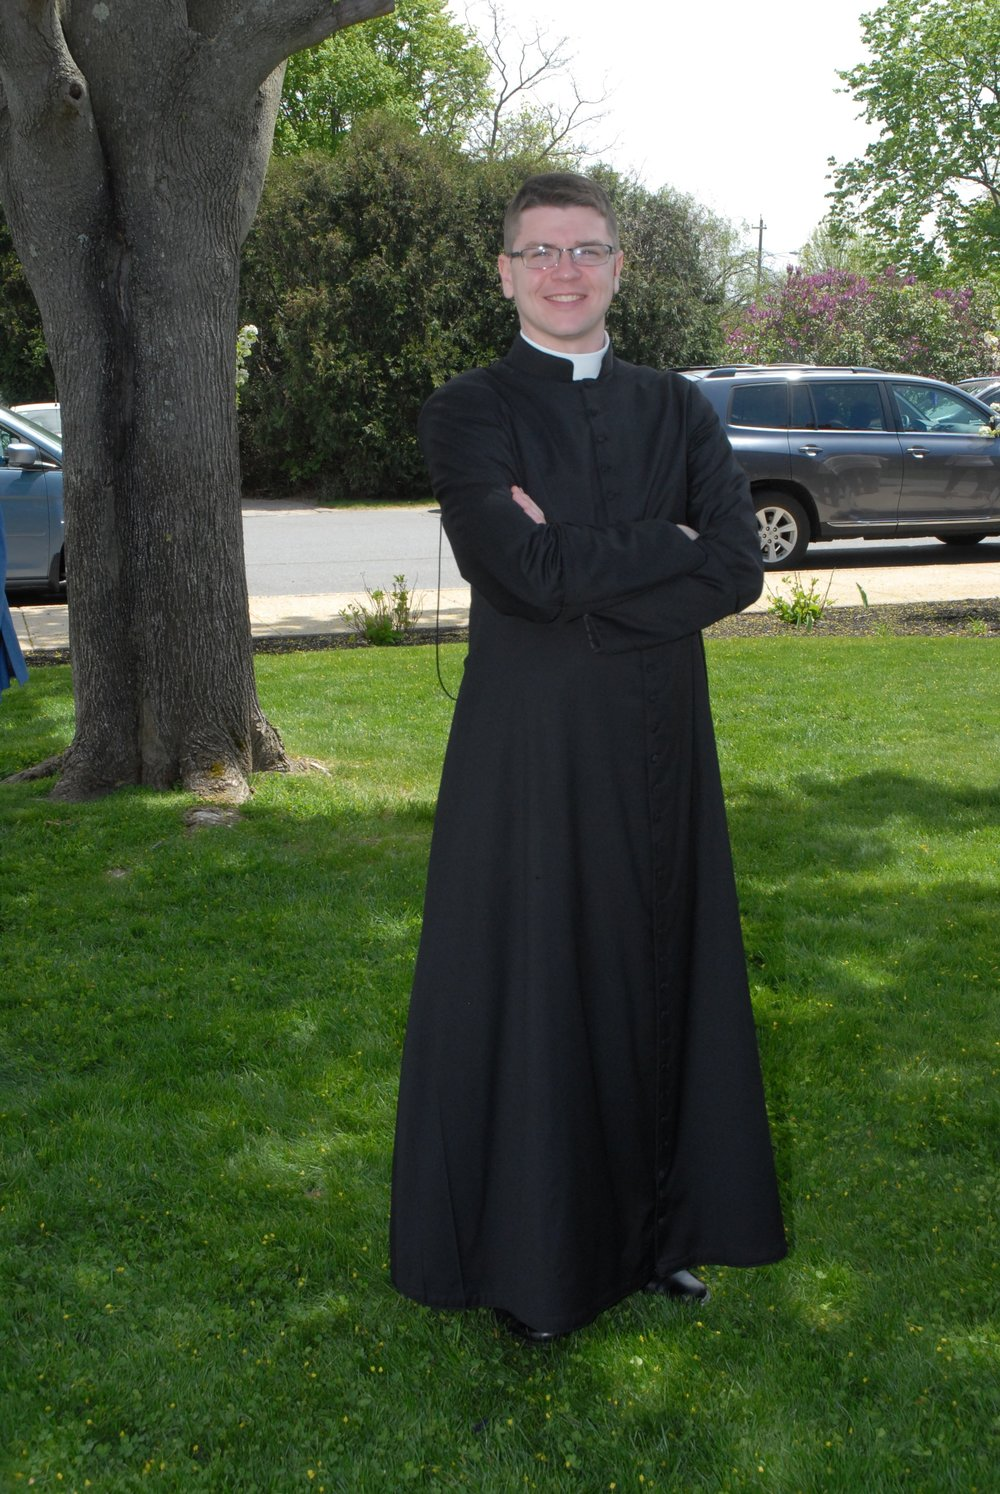 Fr. Connors